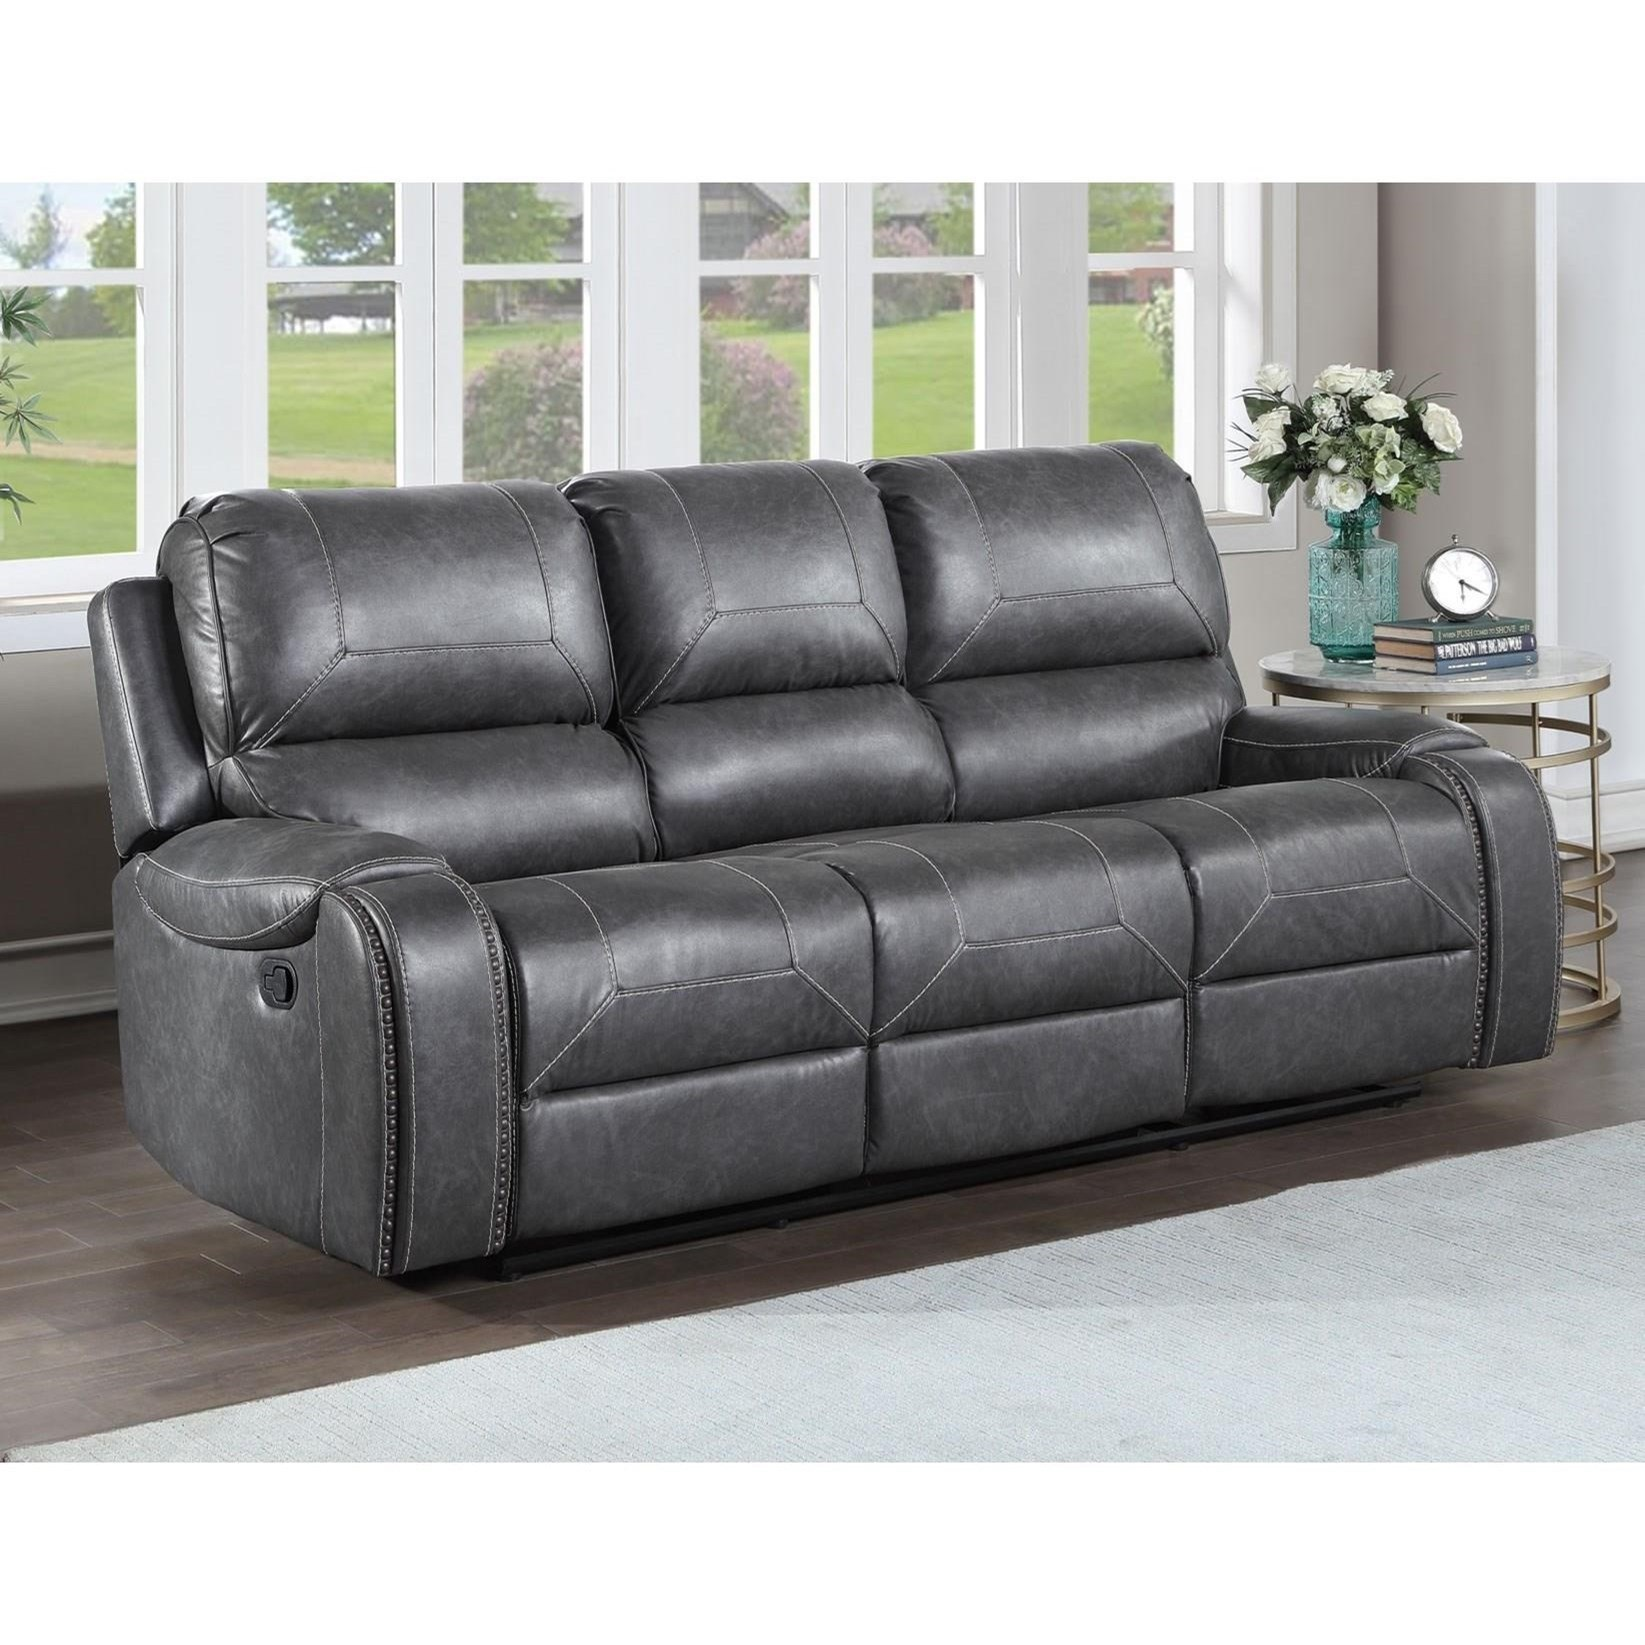 keily manual motion recliner sofa